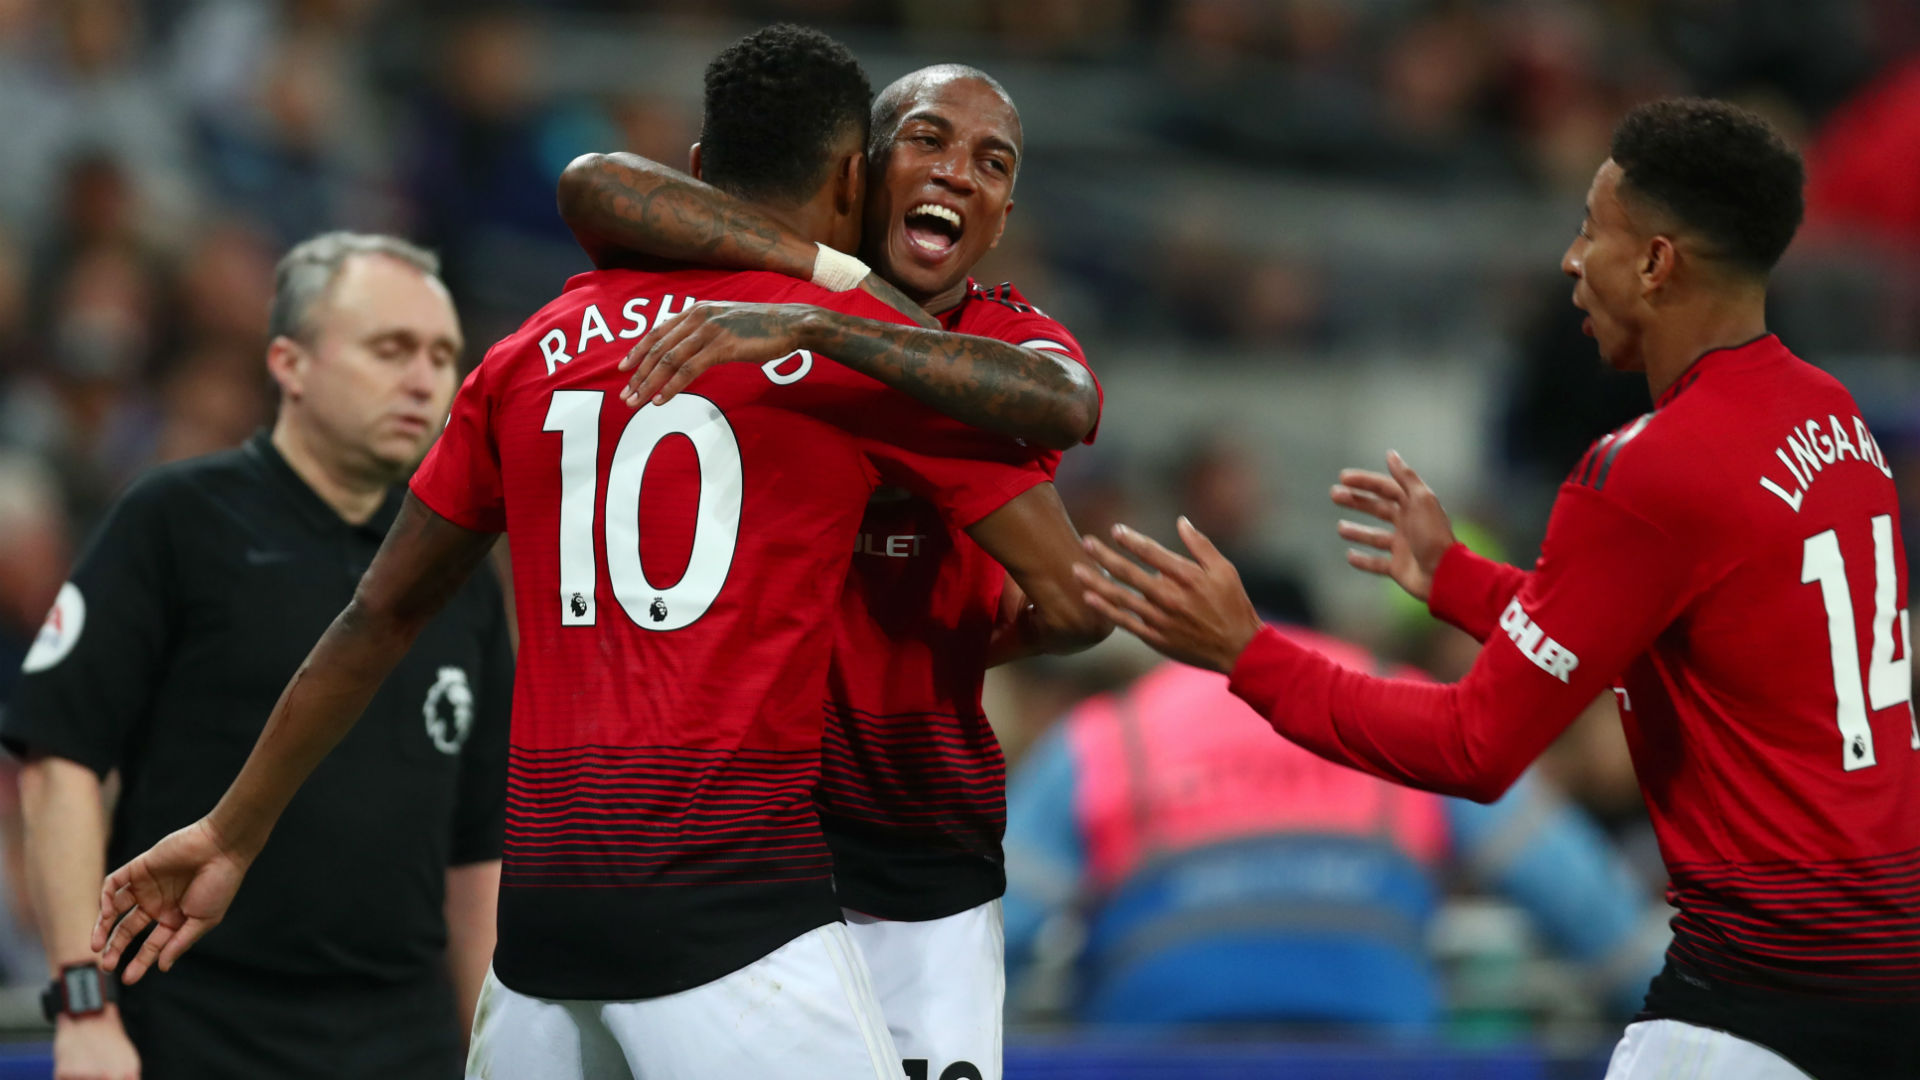 Tottenham 0 Manchester United 1: De Gea the star as Solskjaer passes first real test